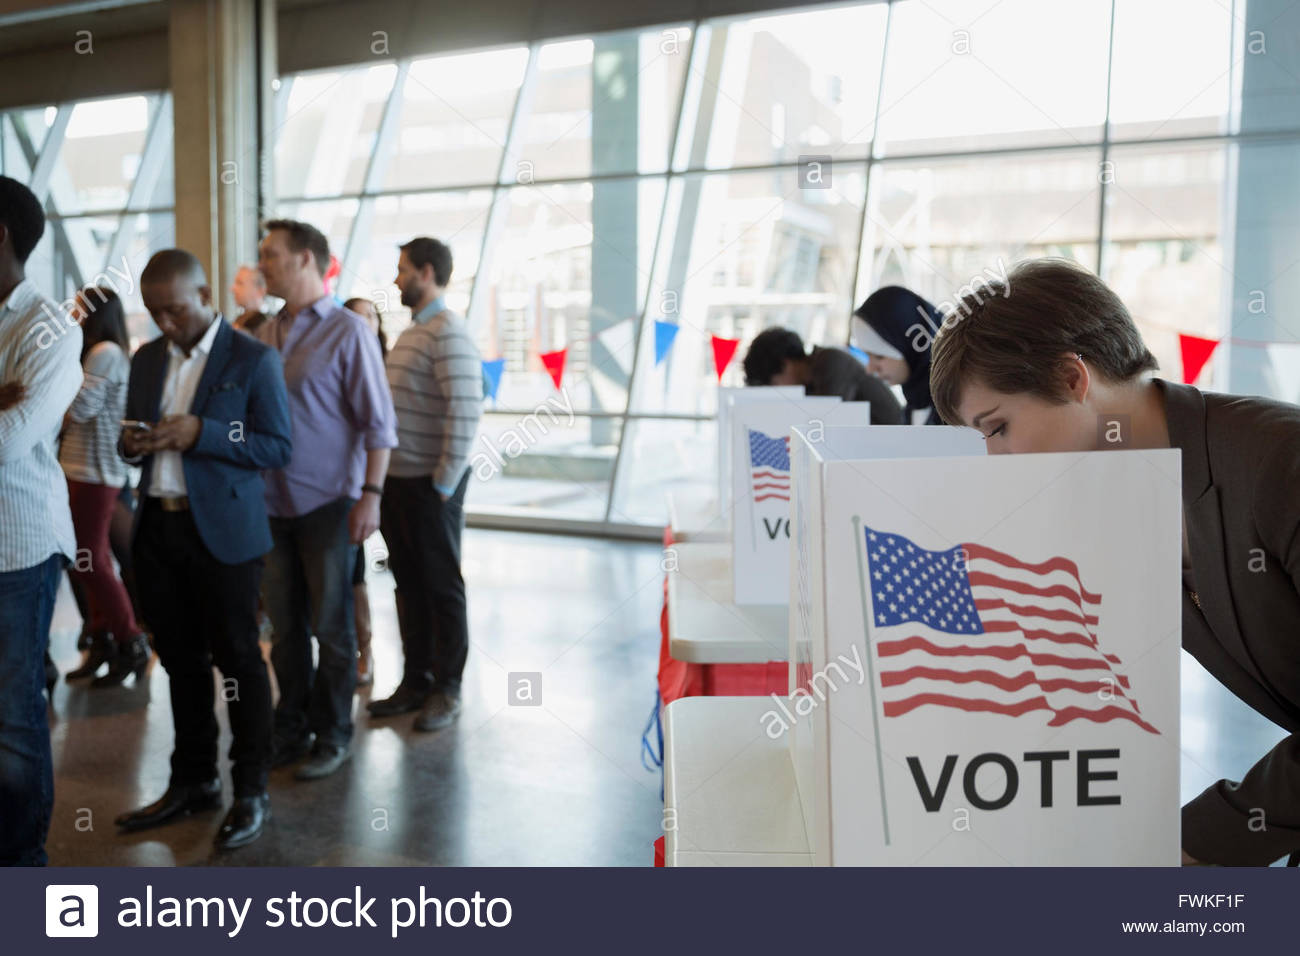 Young woman in voting booth at polling place - Stock Image